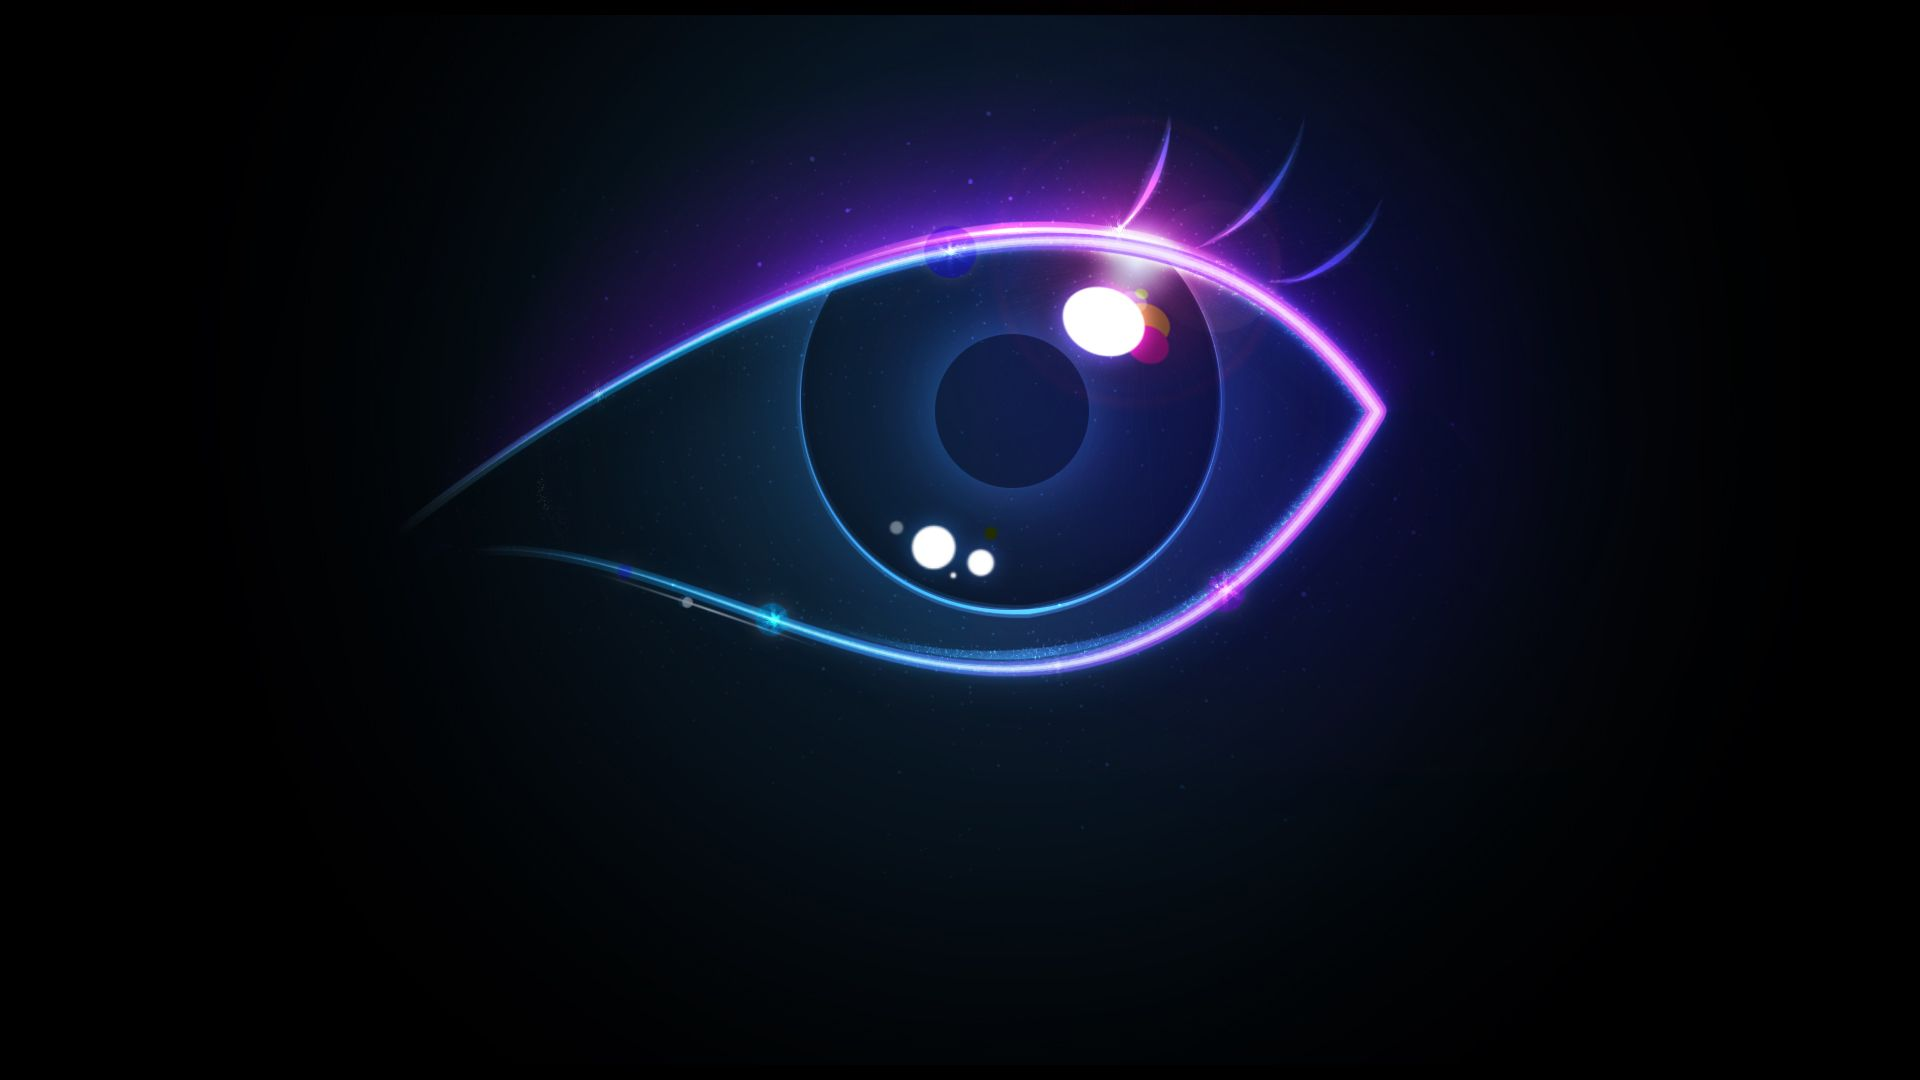 eyes wallpapers for facebook - photo #24